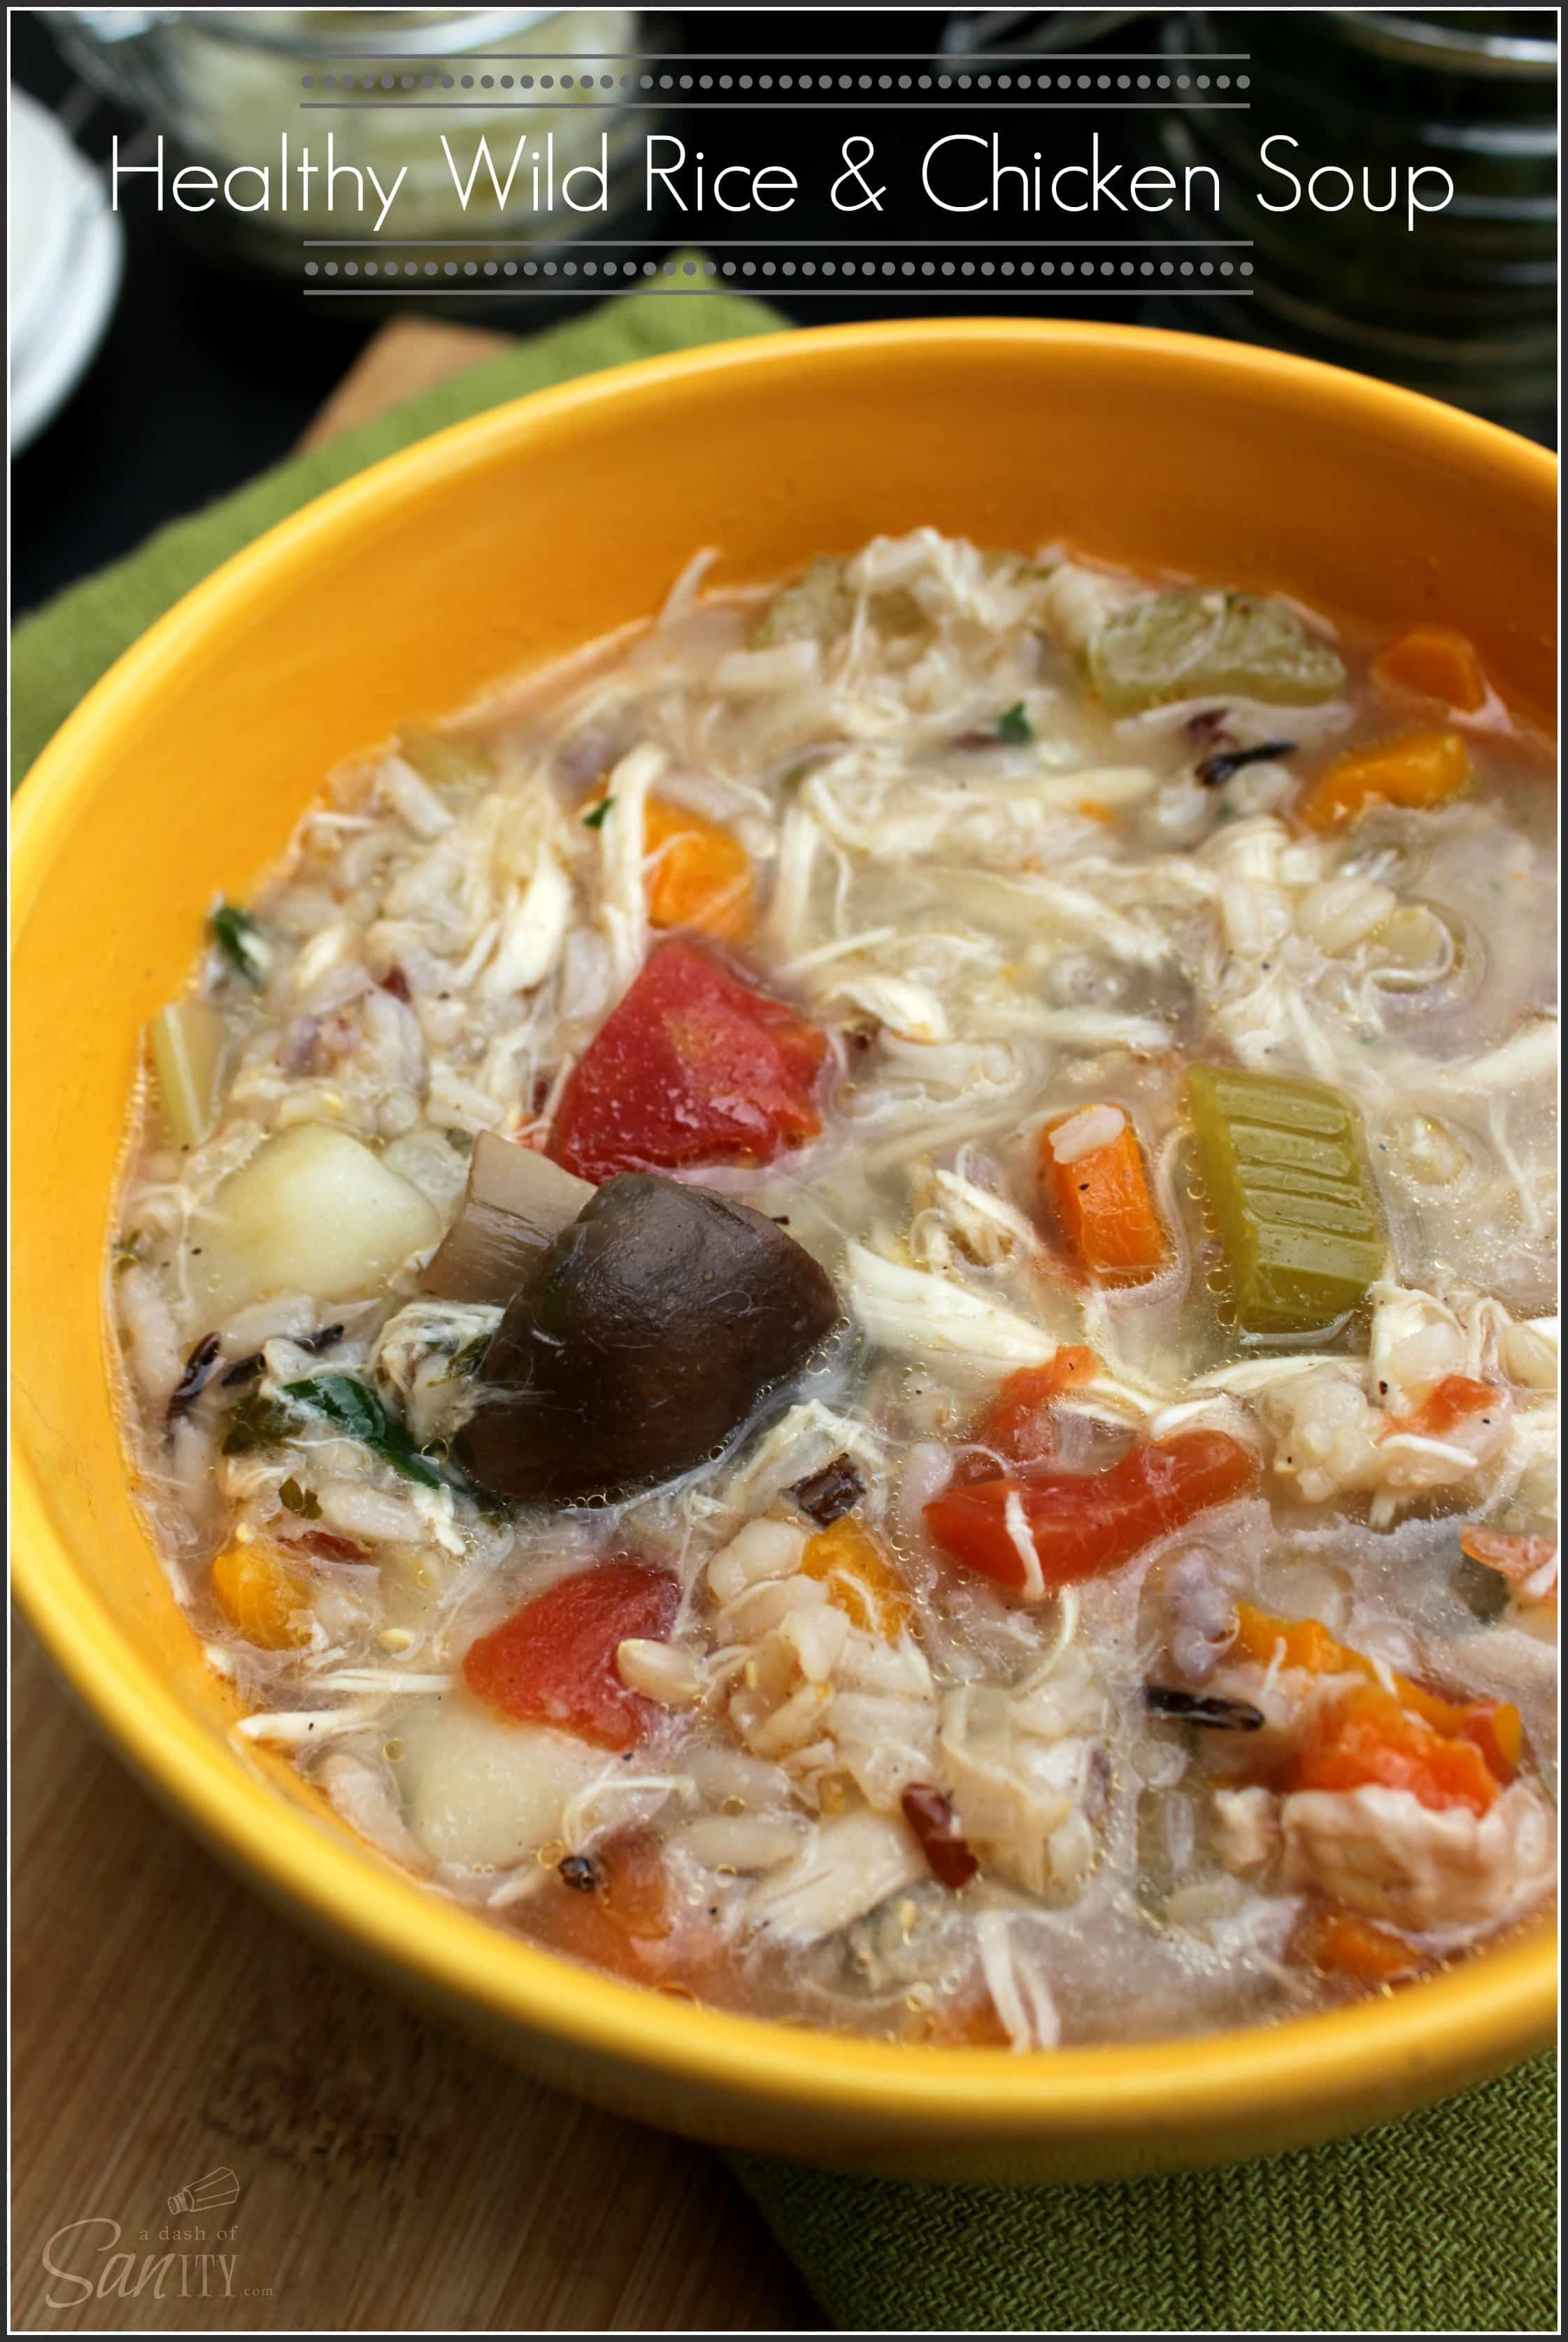 Healthy Chicken And Wild Rice Soup  Healthy Wild Rice & Chicken Soup A Dash of Sanity